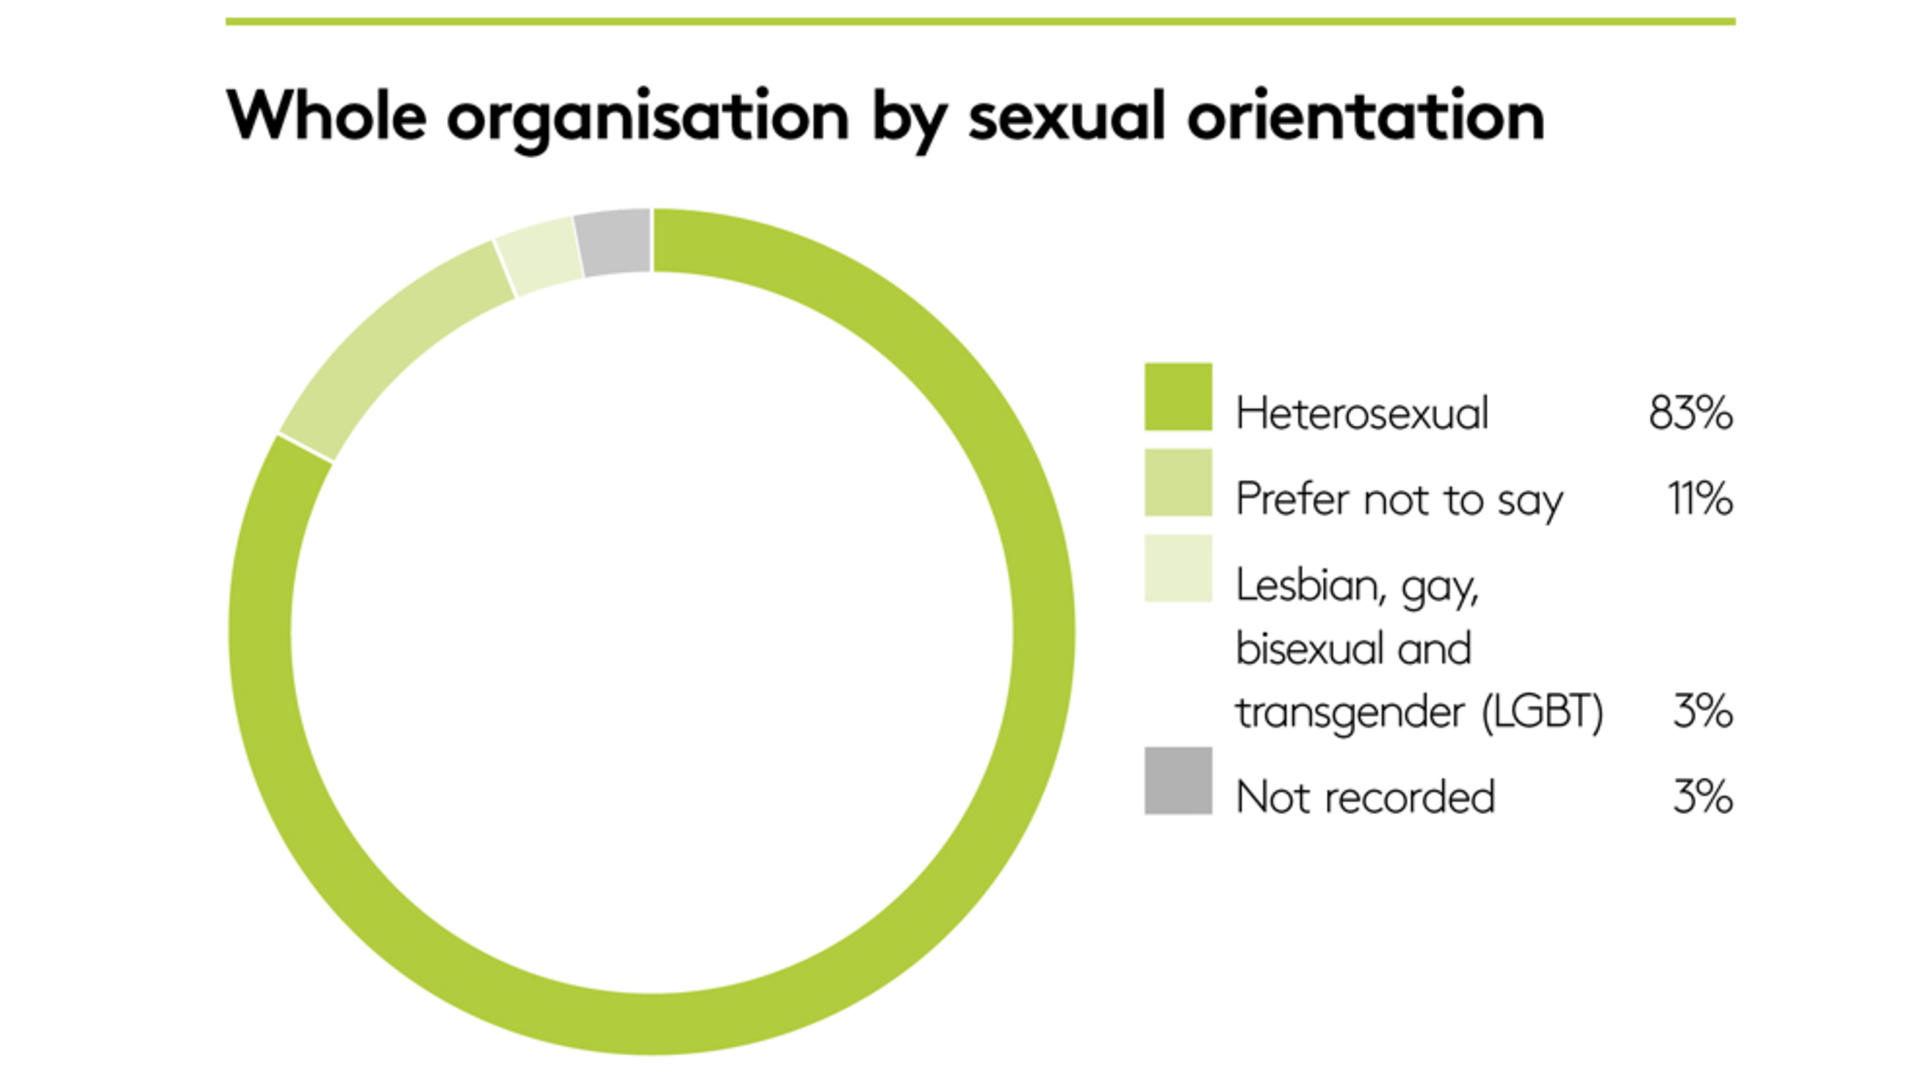 Whole organisation by sexual orientation